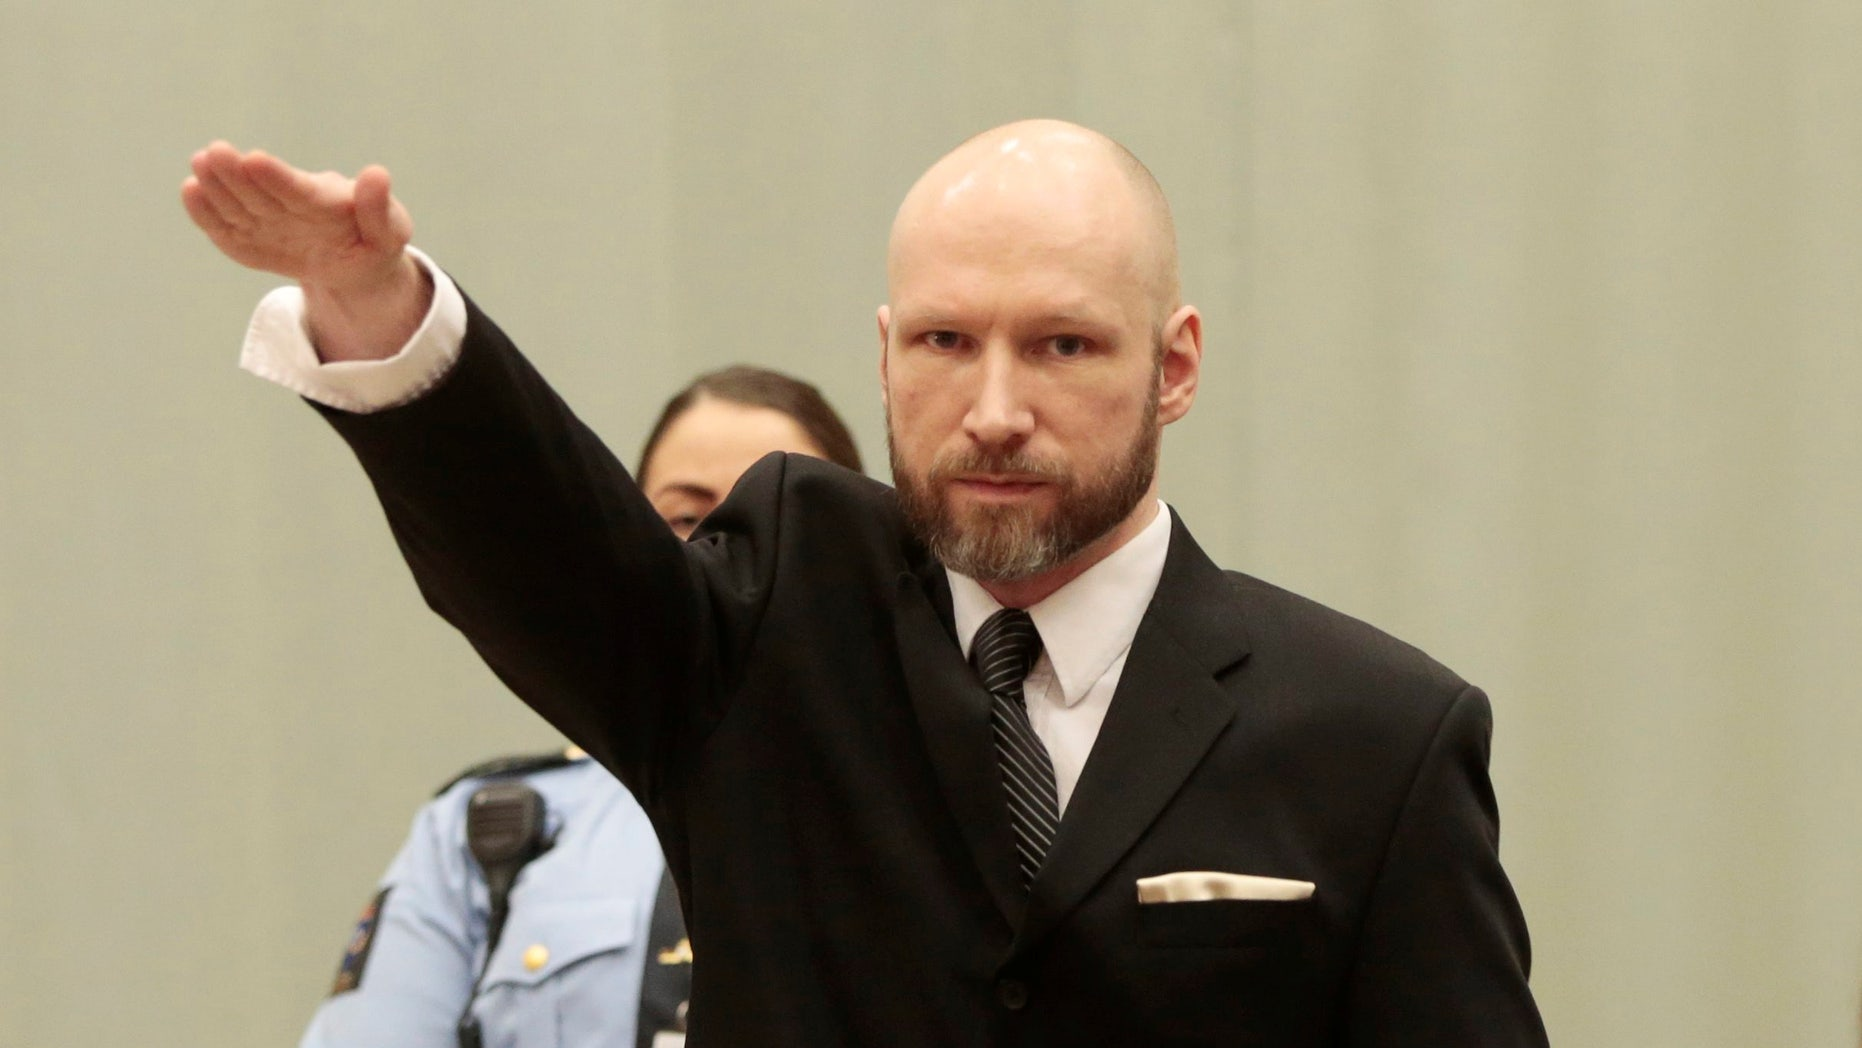 Anders Behring Breivik in court.